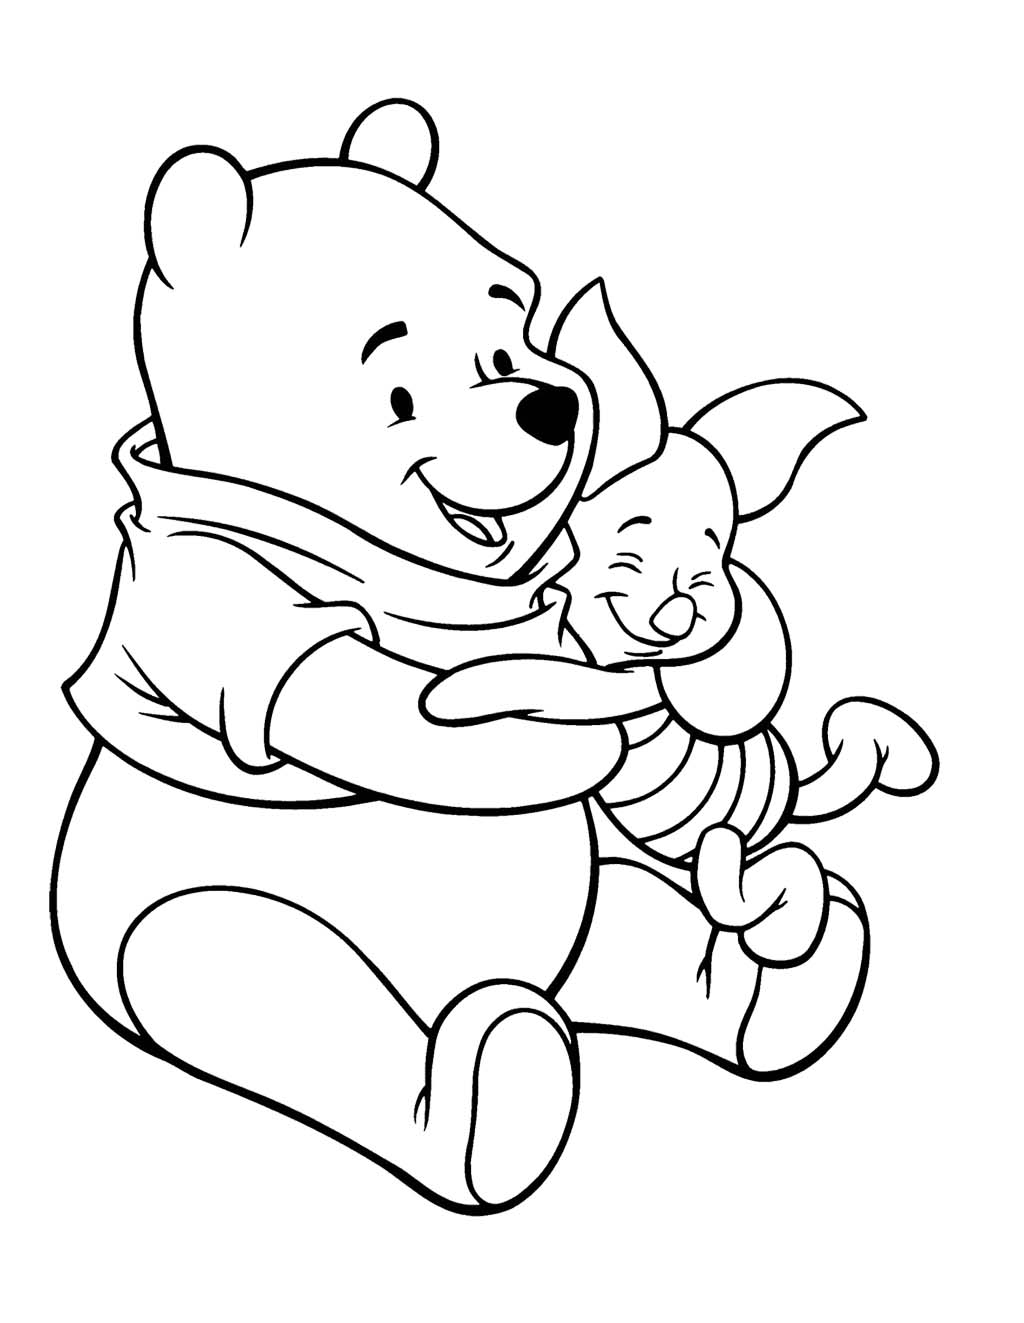 Piglett Winne The Pooh Clipart Best Winnie The Pooh And Piglet Coloring Pages